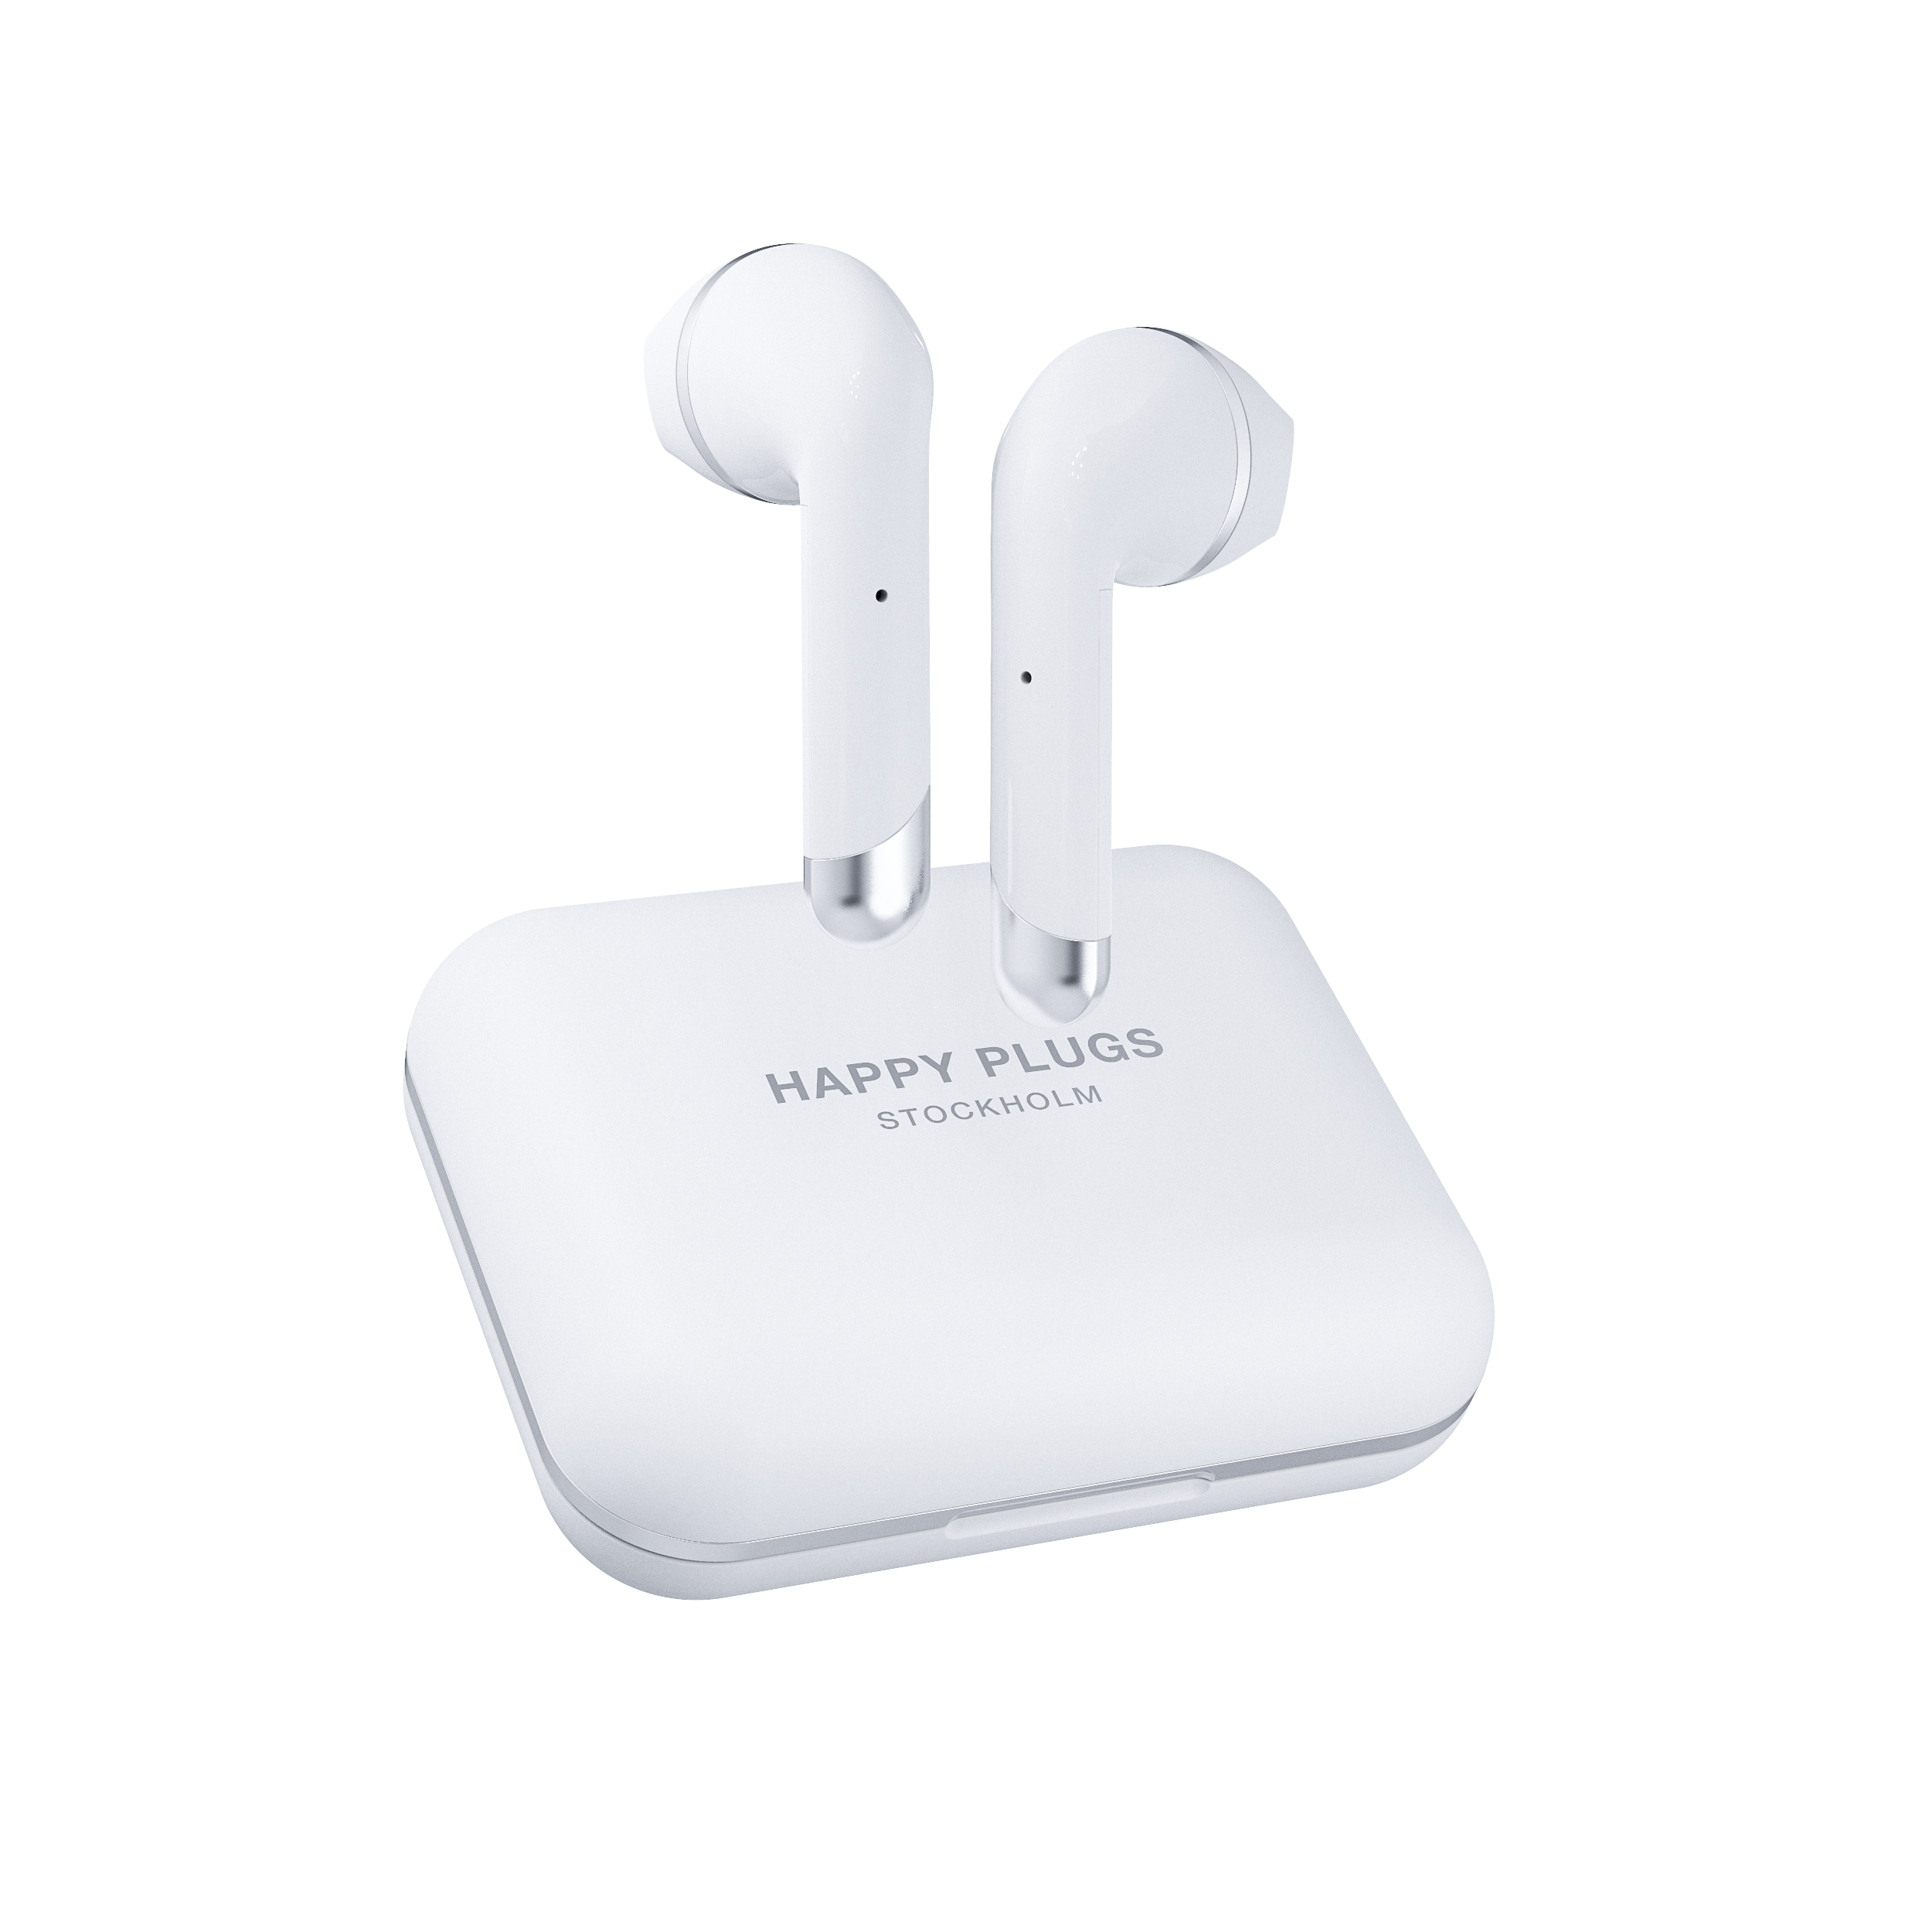 AIR 1 PLUS EARBUD WHITE 1650